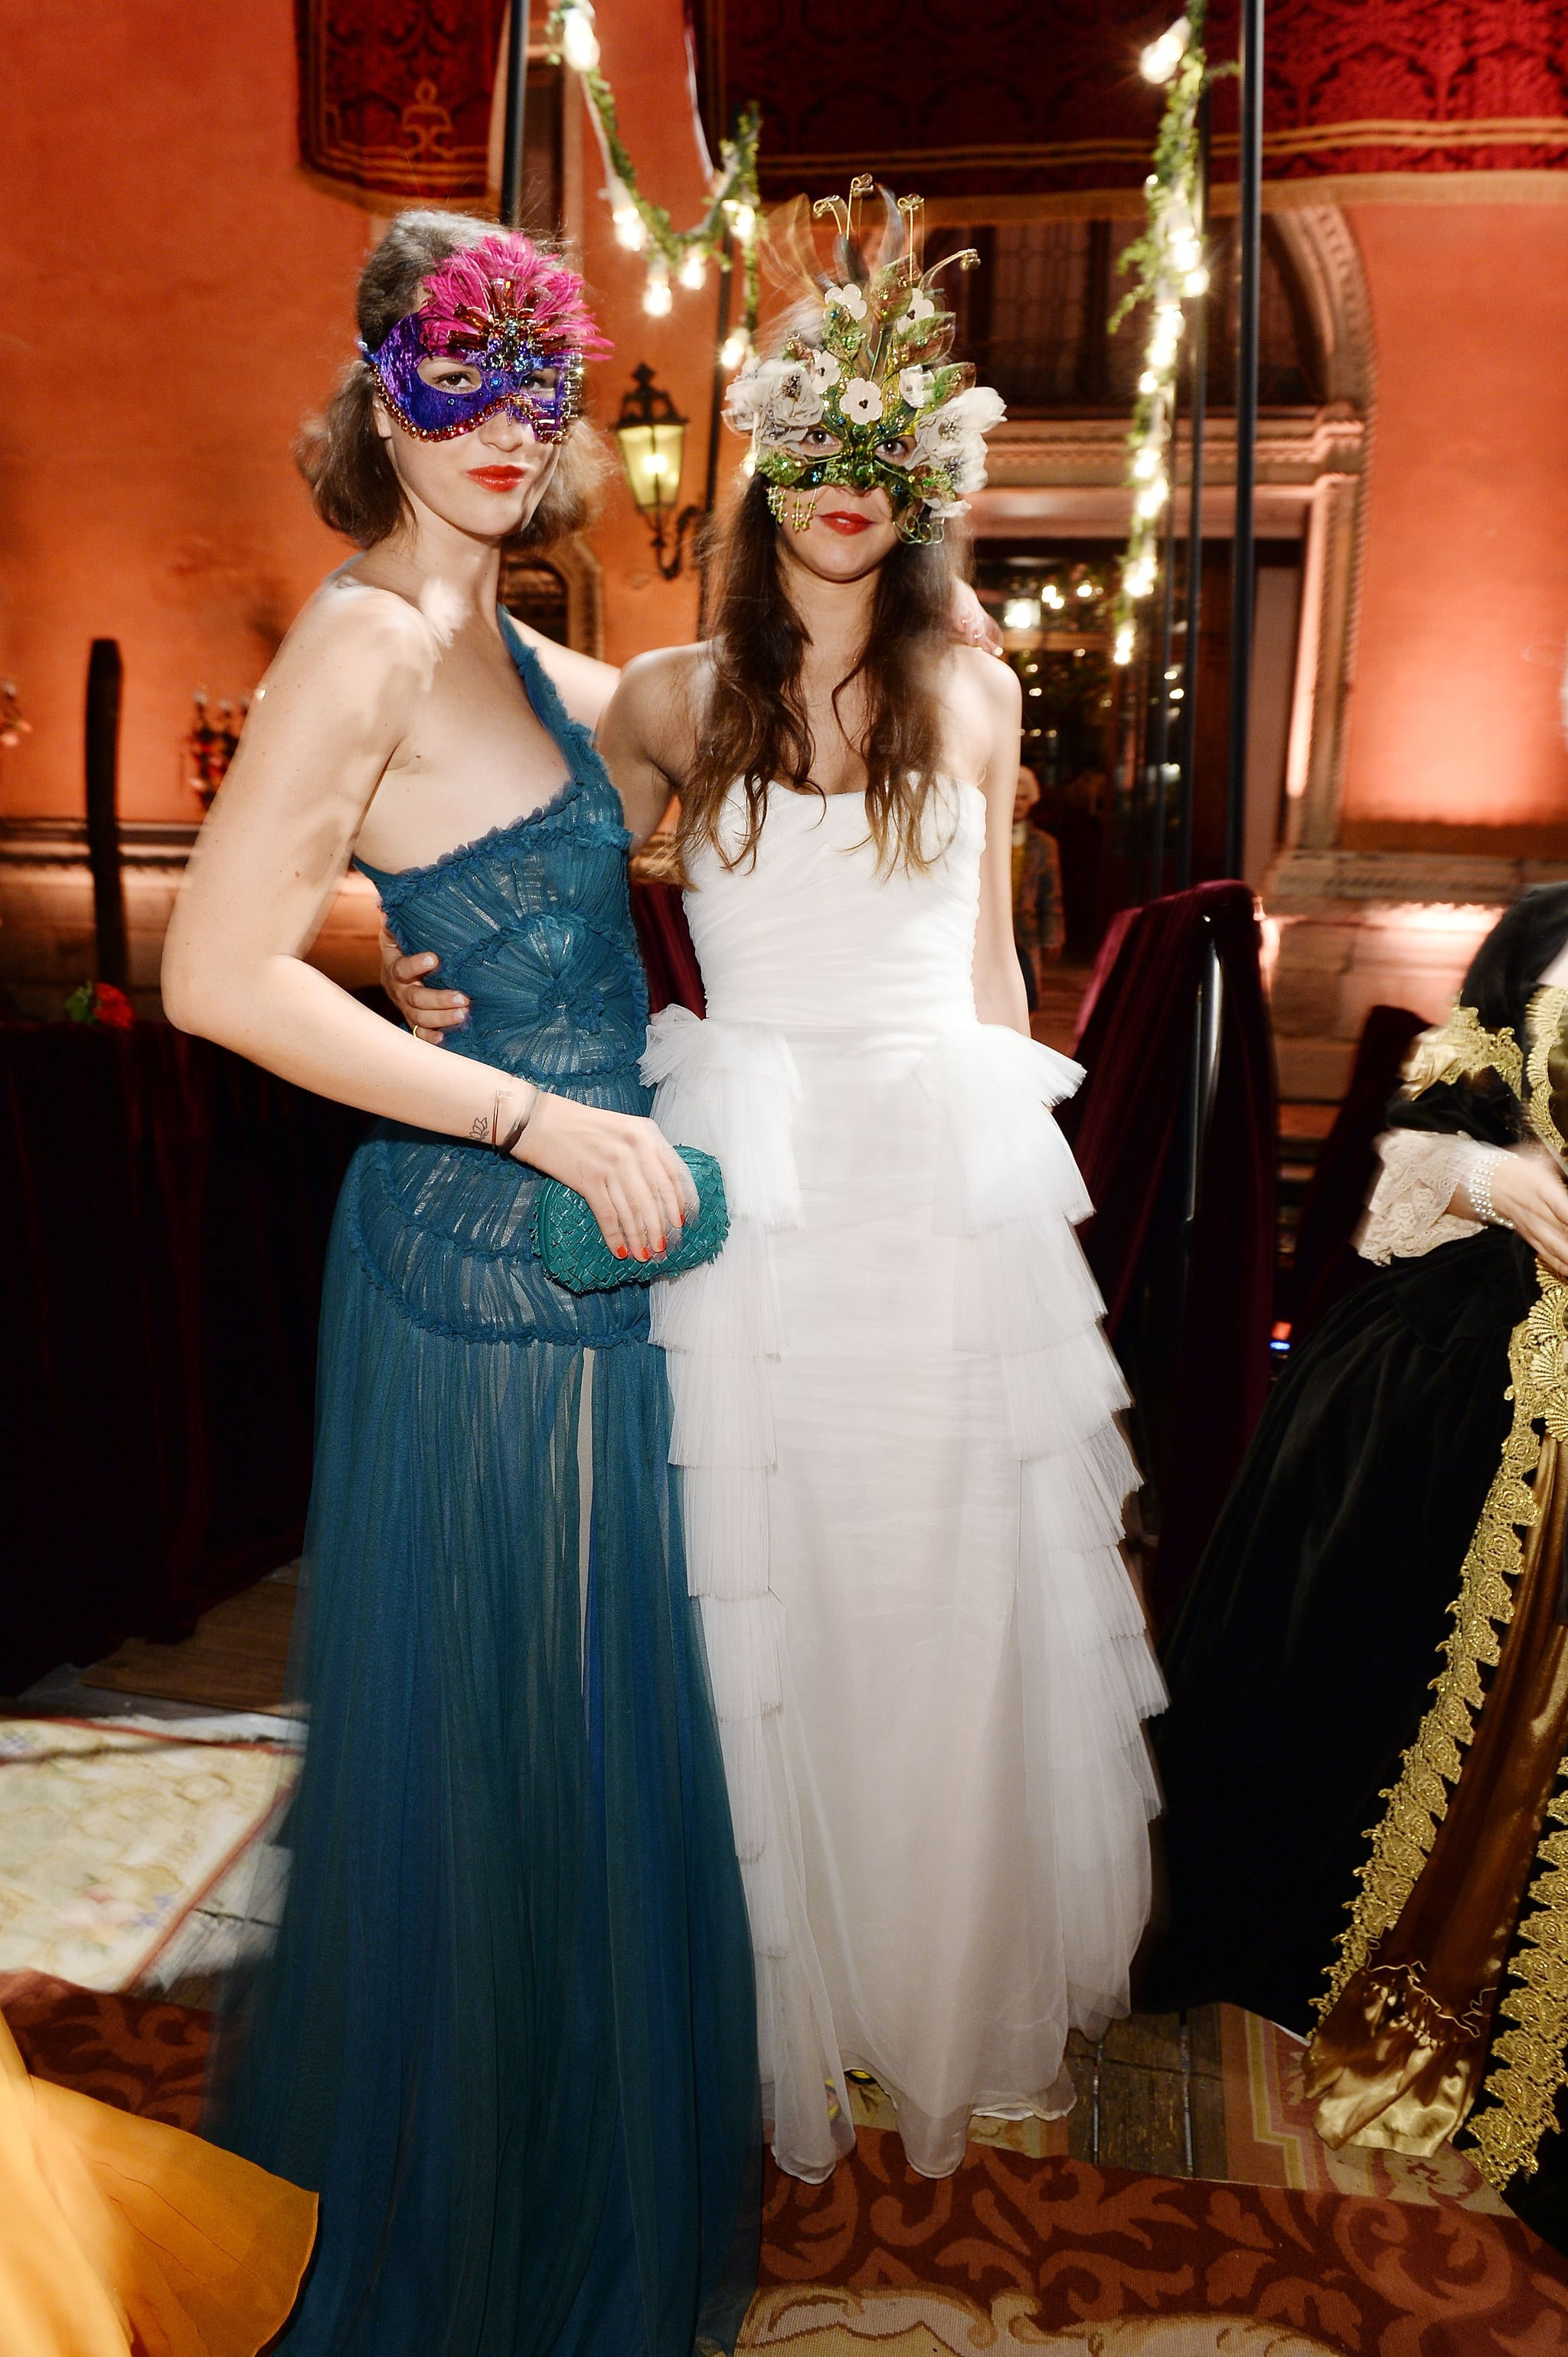 It doesn't get much more romantic and fantastical than Viola Arrivabene Valenti Gonzaga and Vera Arrivabene's airy chiffon gowns at Dolce & Gabbana's Venetian soiree.